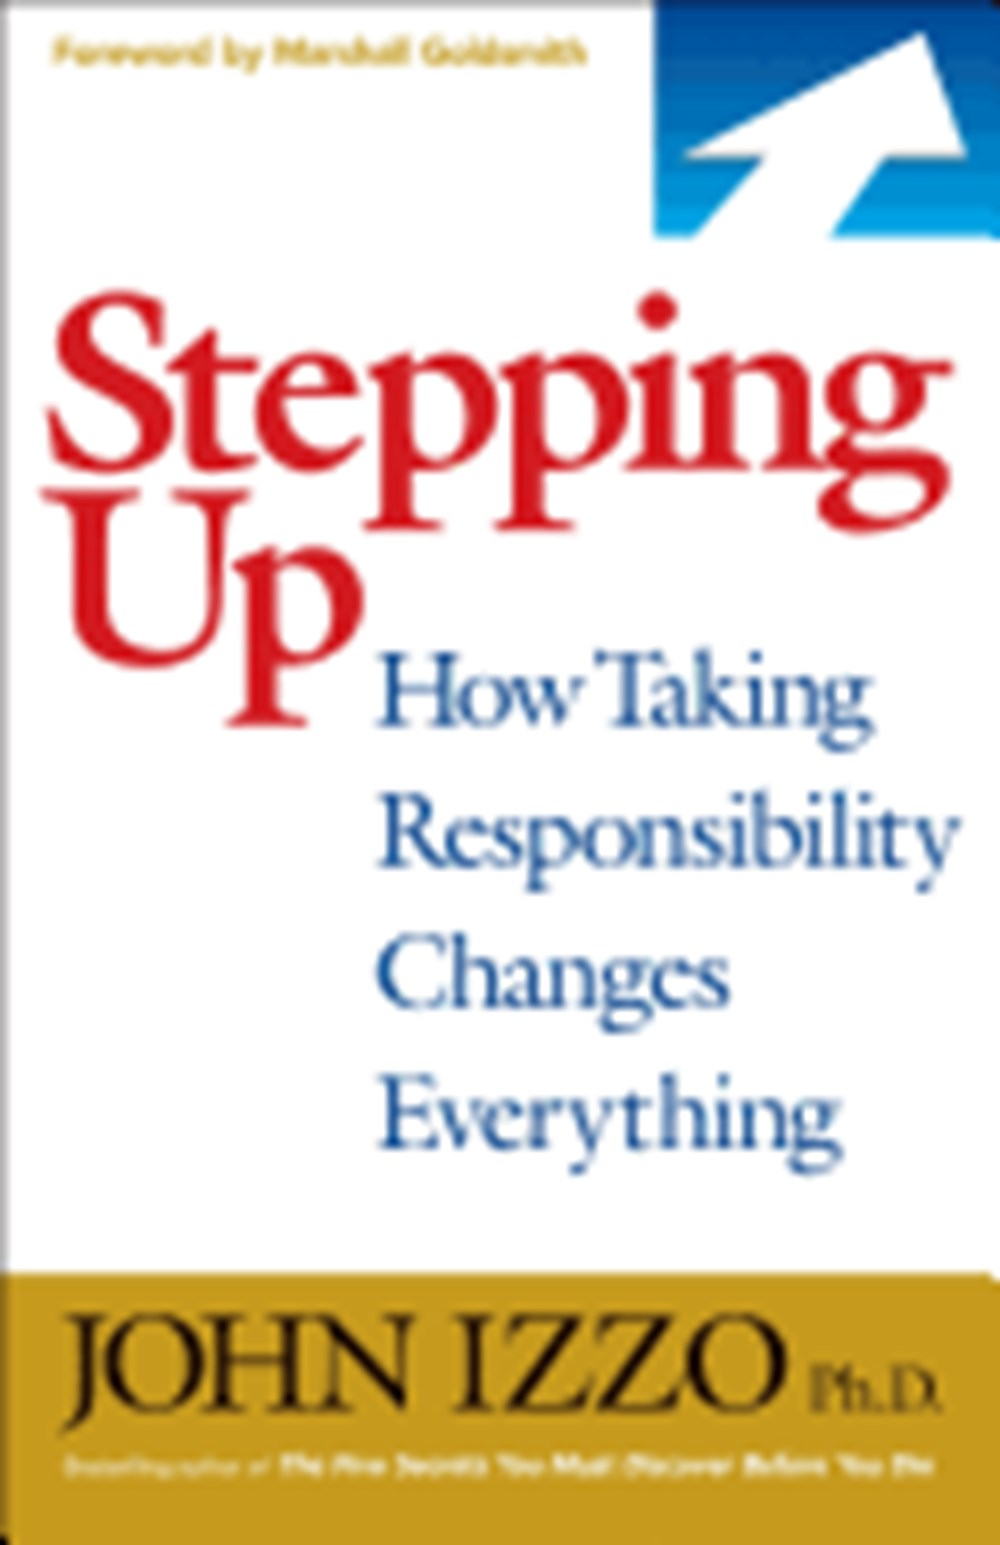 Stepping Up How Taking Responsibility Changes Everything